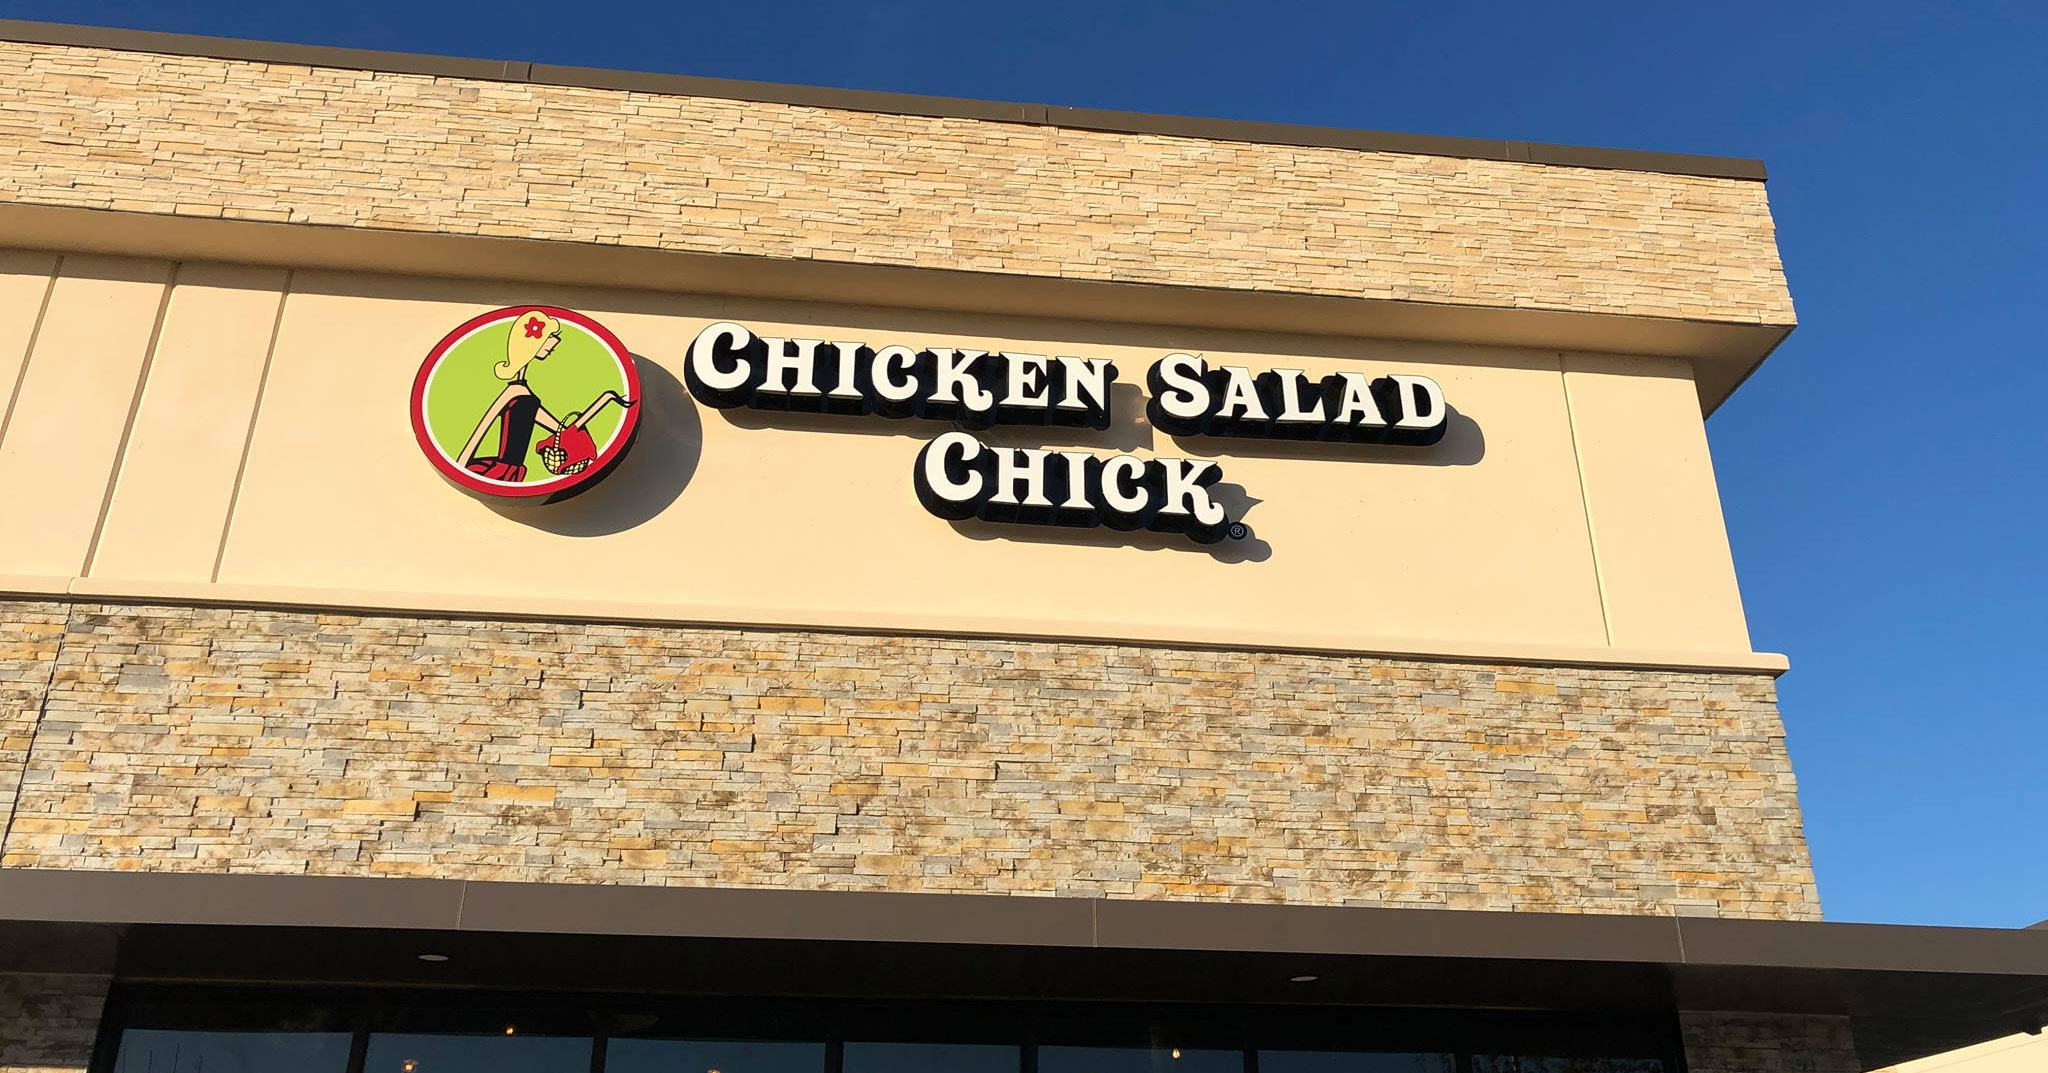 Texas Multi-Brand Operator Adds Chicken Salad Chick To Portfolio